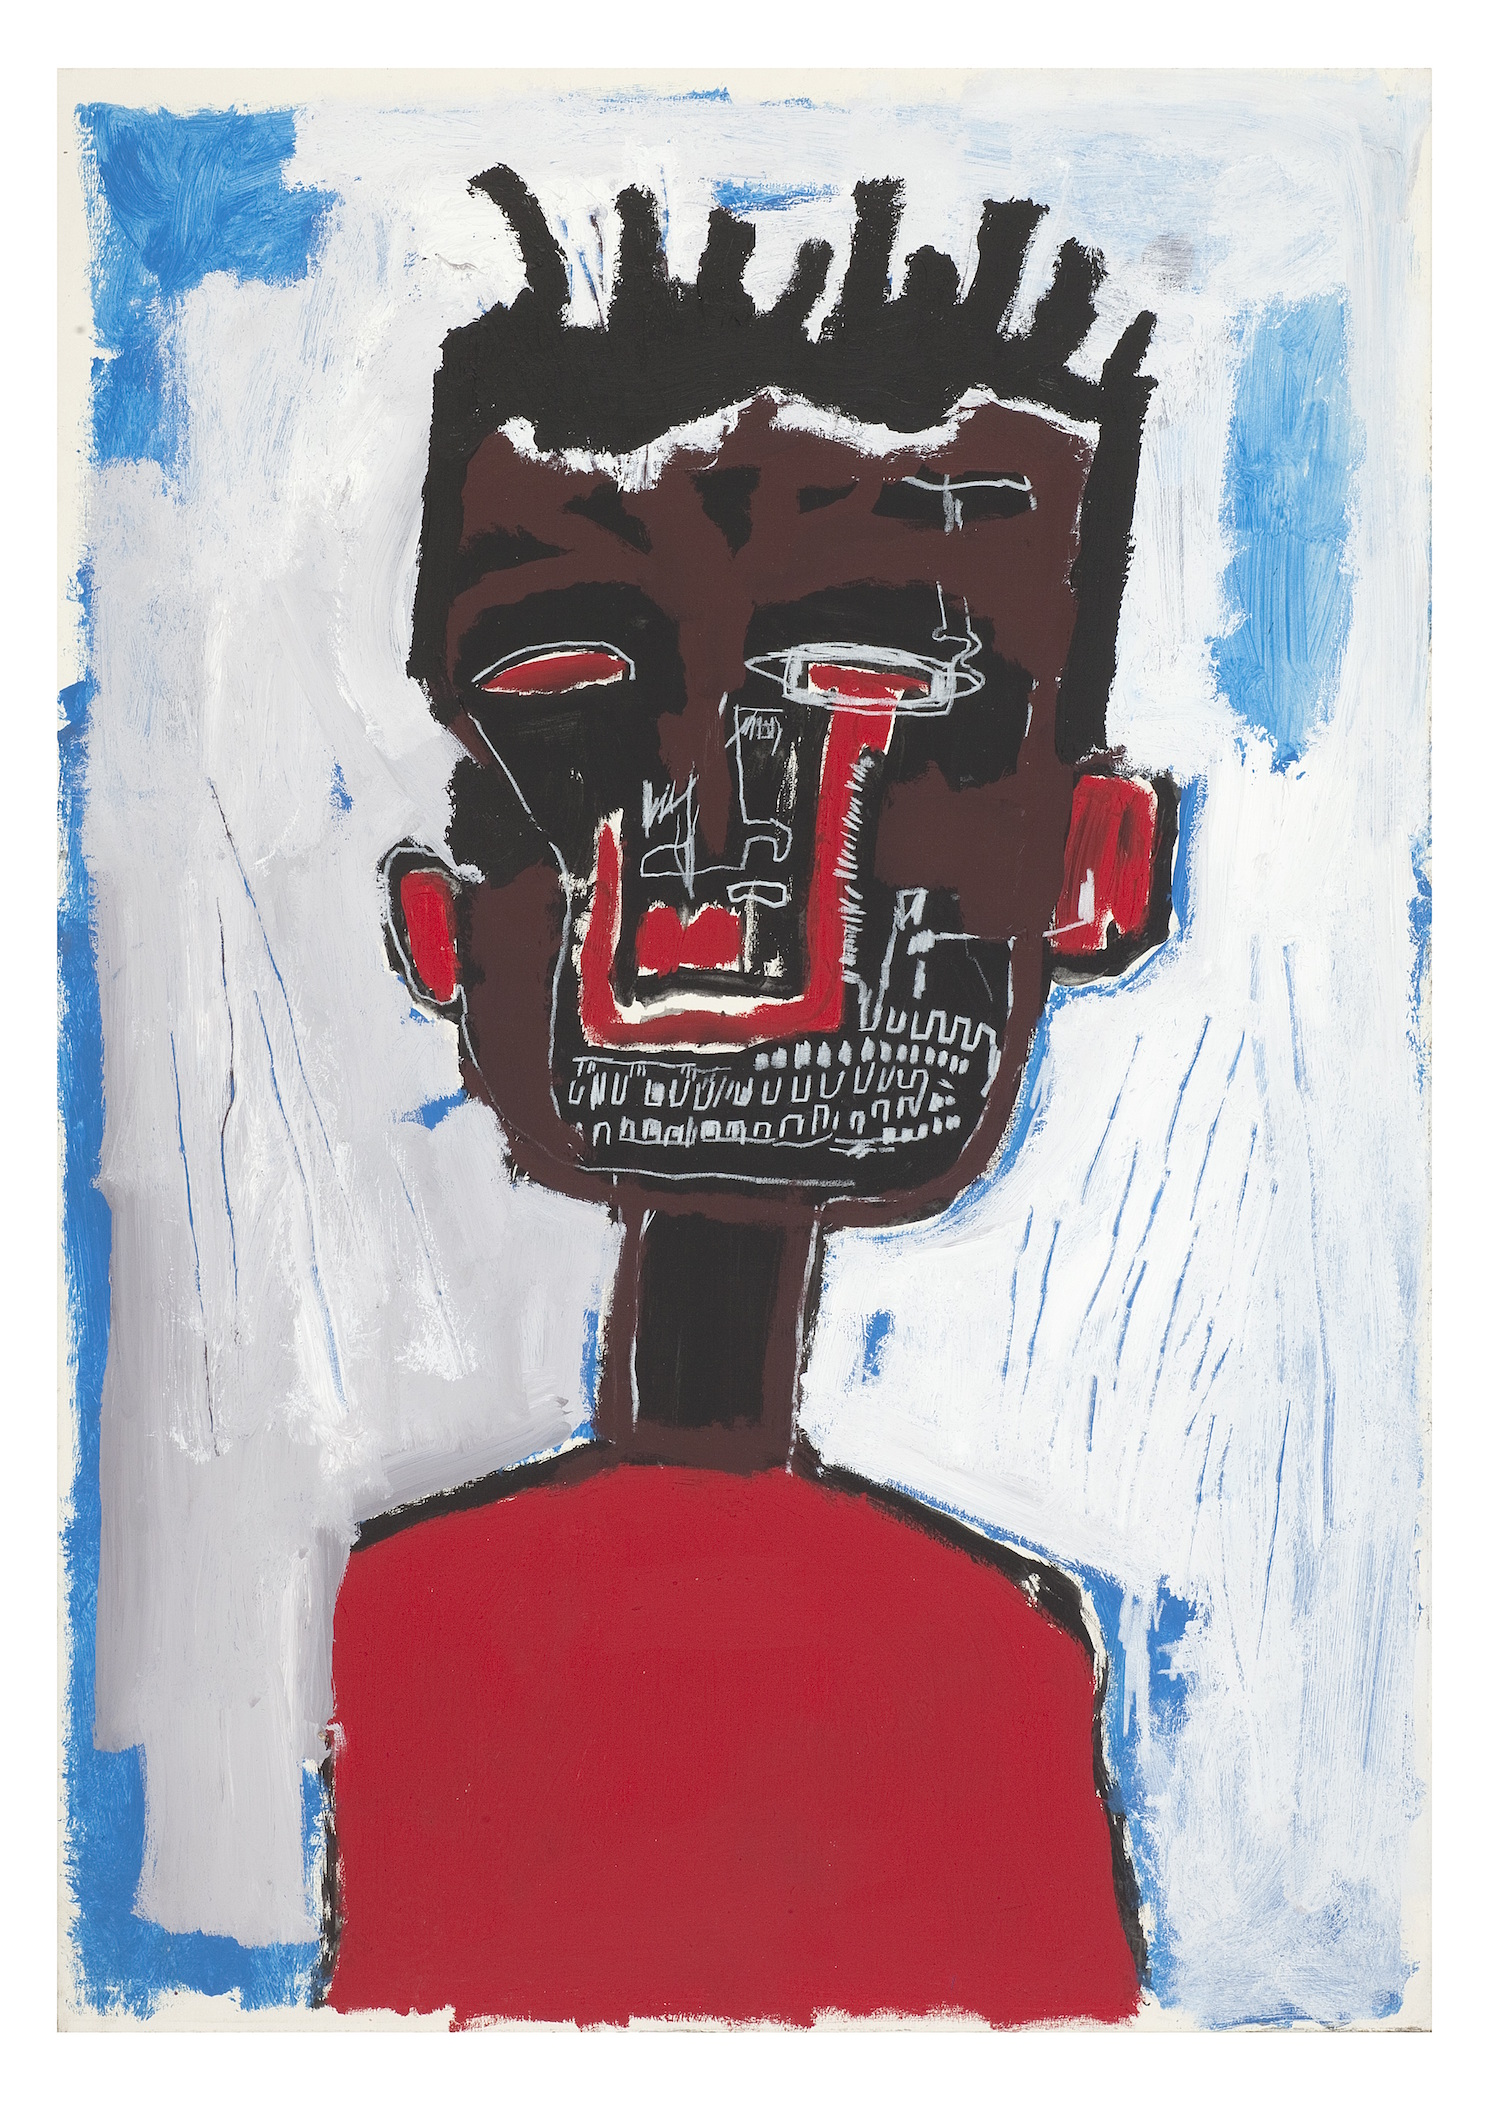 Jean-Michel Basquiat, Self Portrait, 1984, Private collection